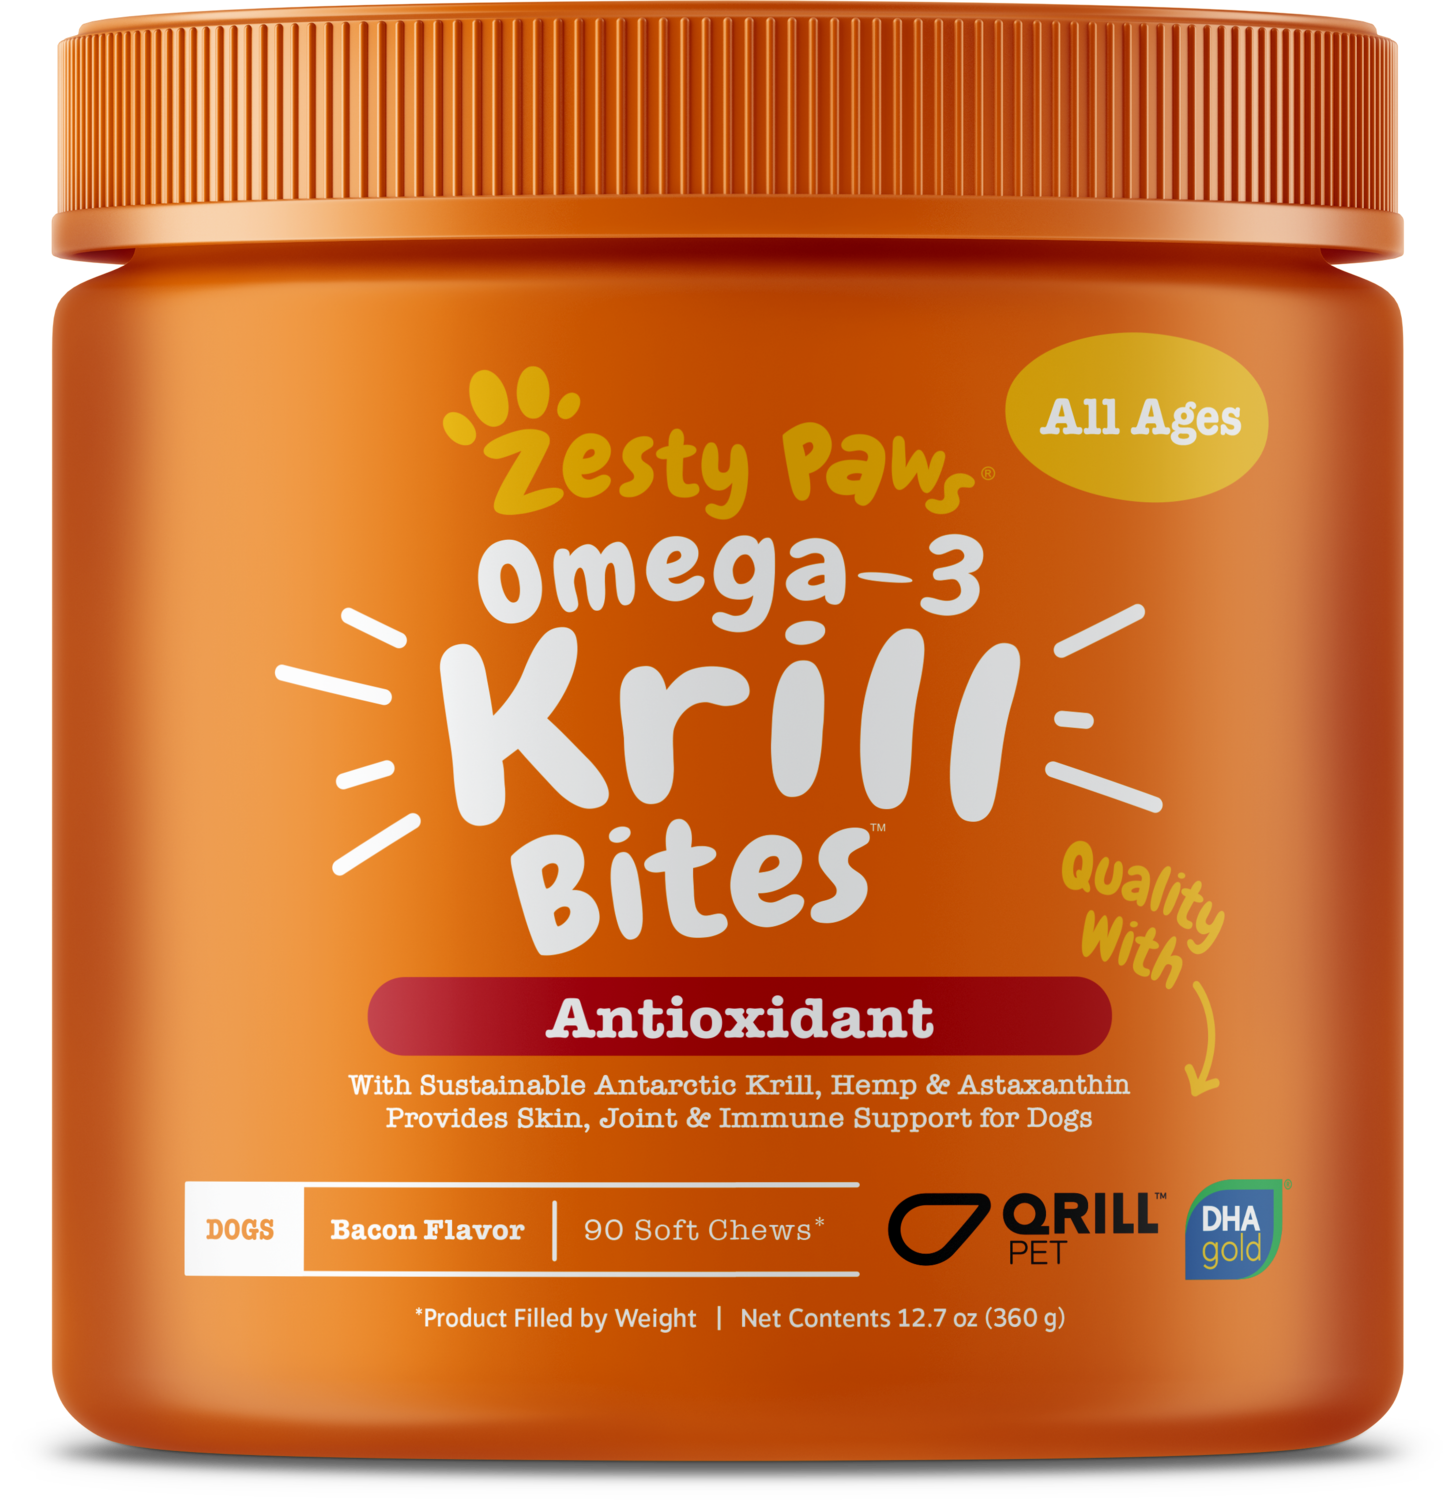 Krill Bites with Sustainable Antarctic Krill + DHA Gold® and QRILL Pet for Dogs